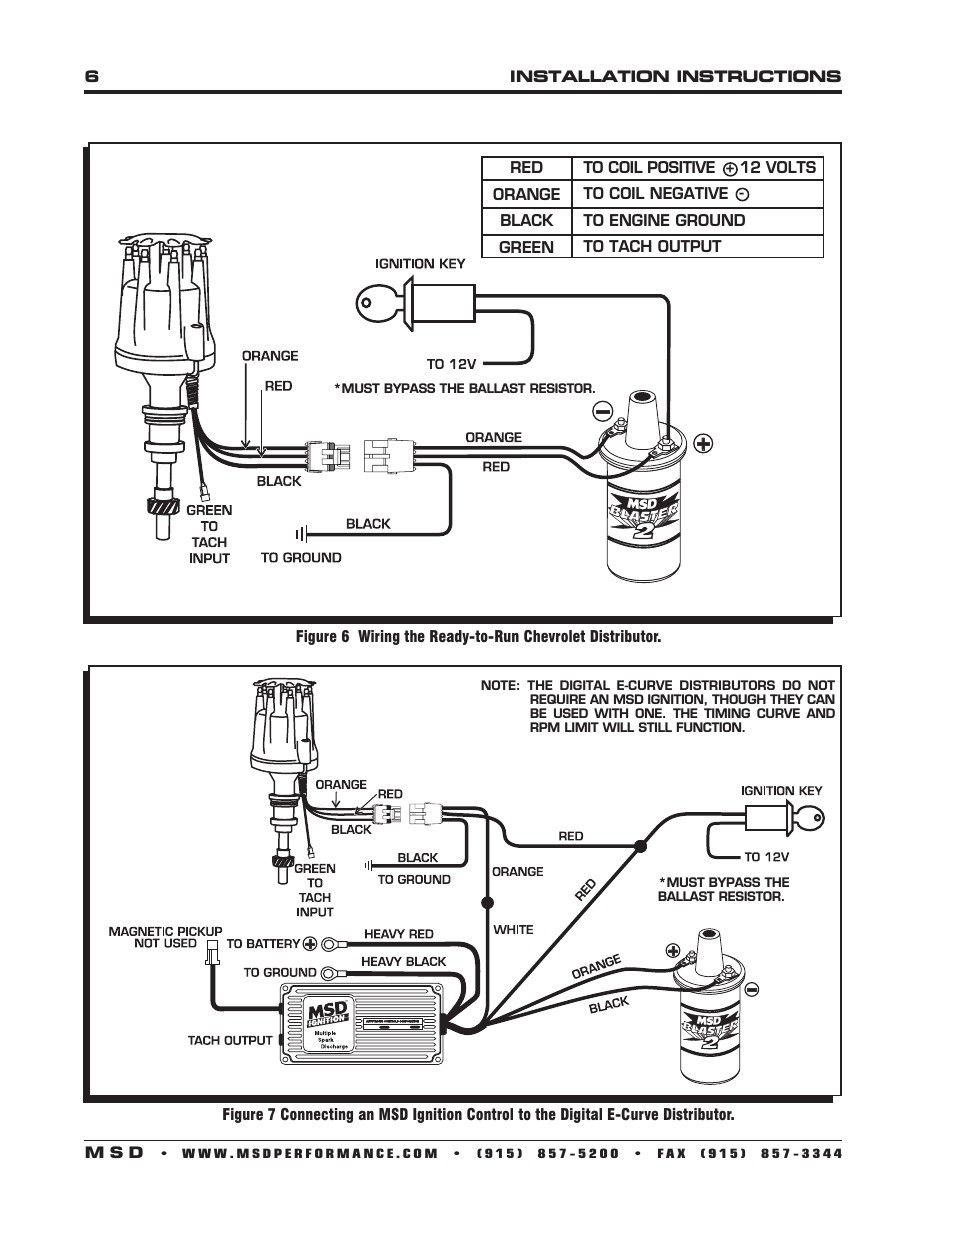 Best Of Ford 302 Distributor Wiring Diagram In 2020 Wire Diagram Ford